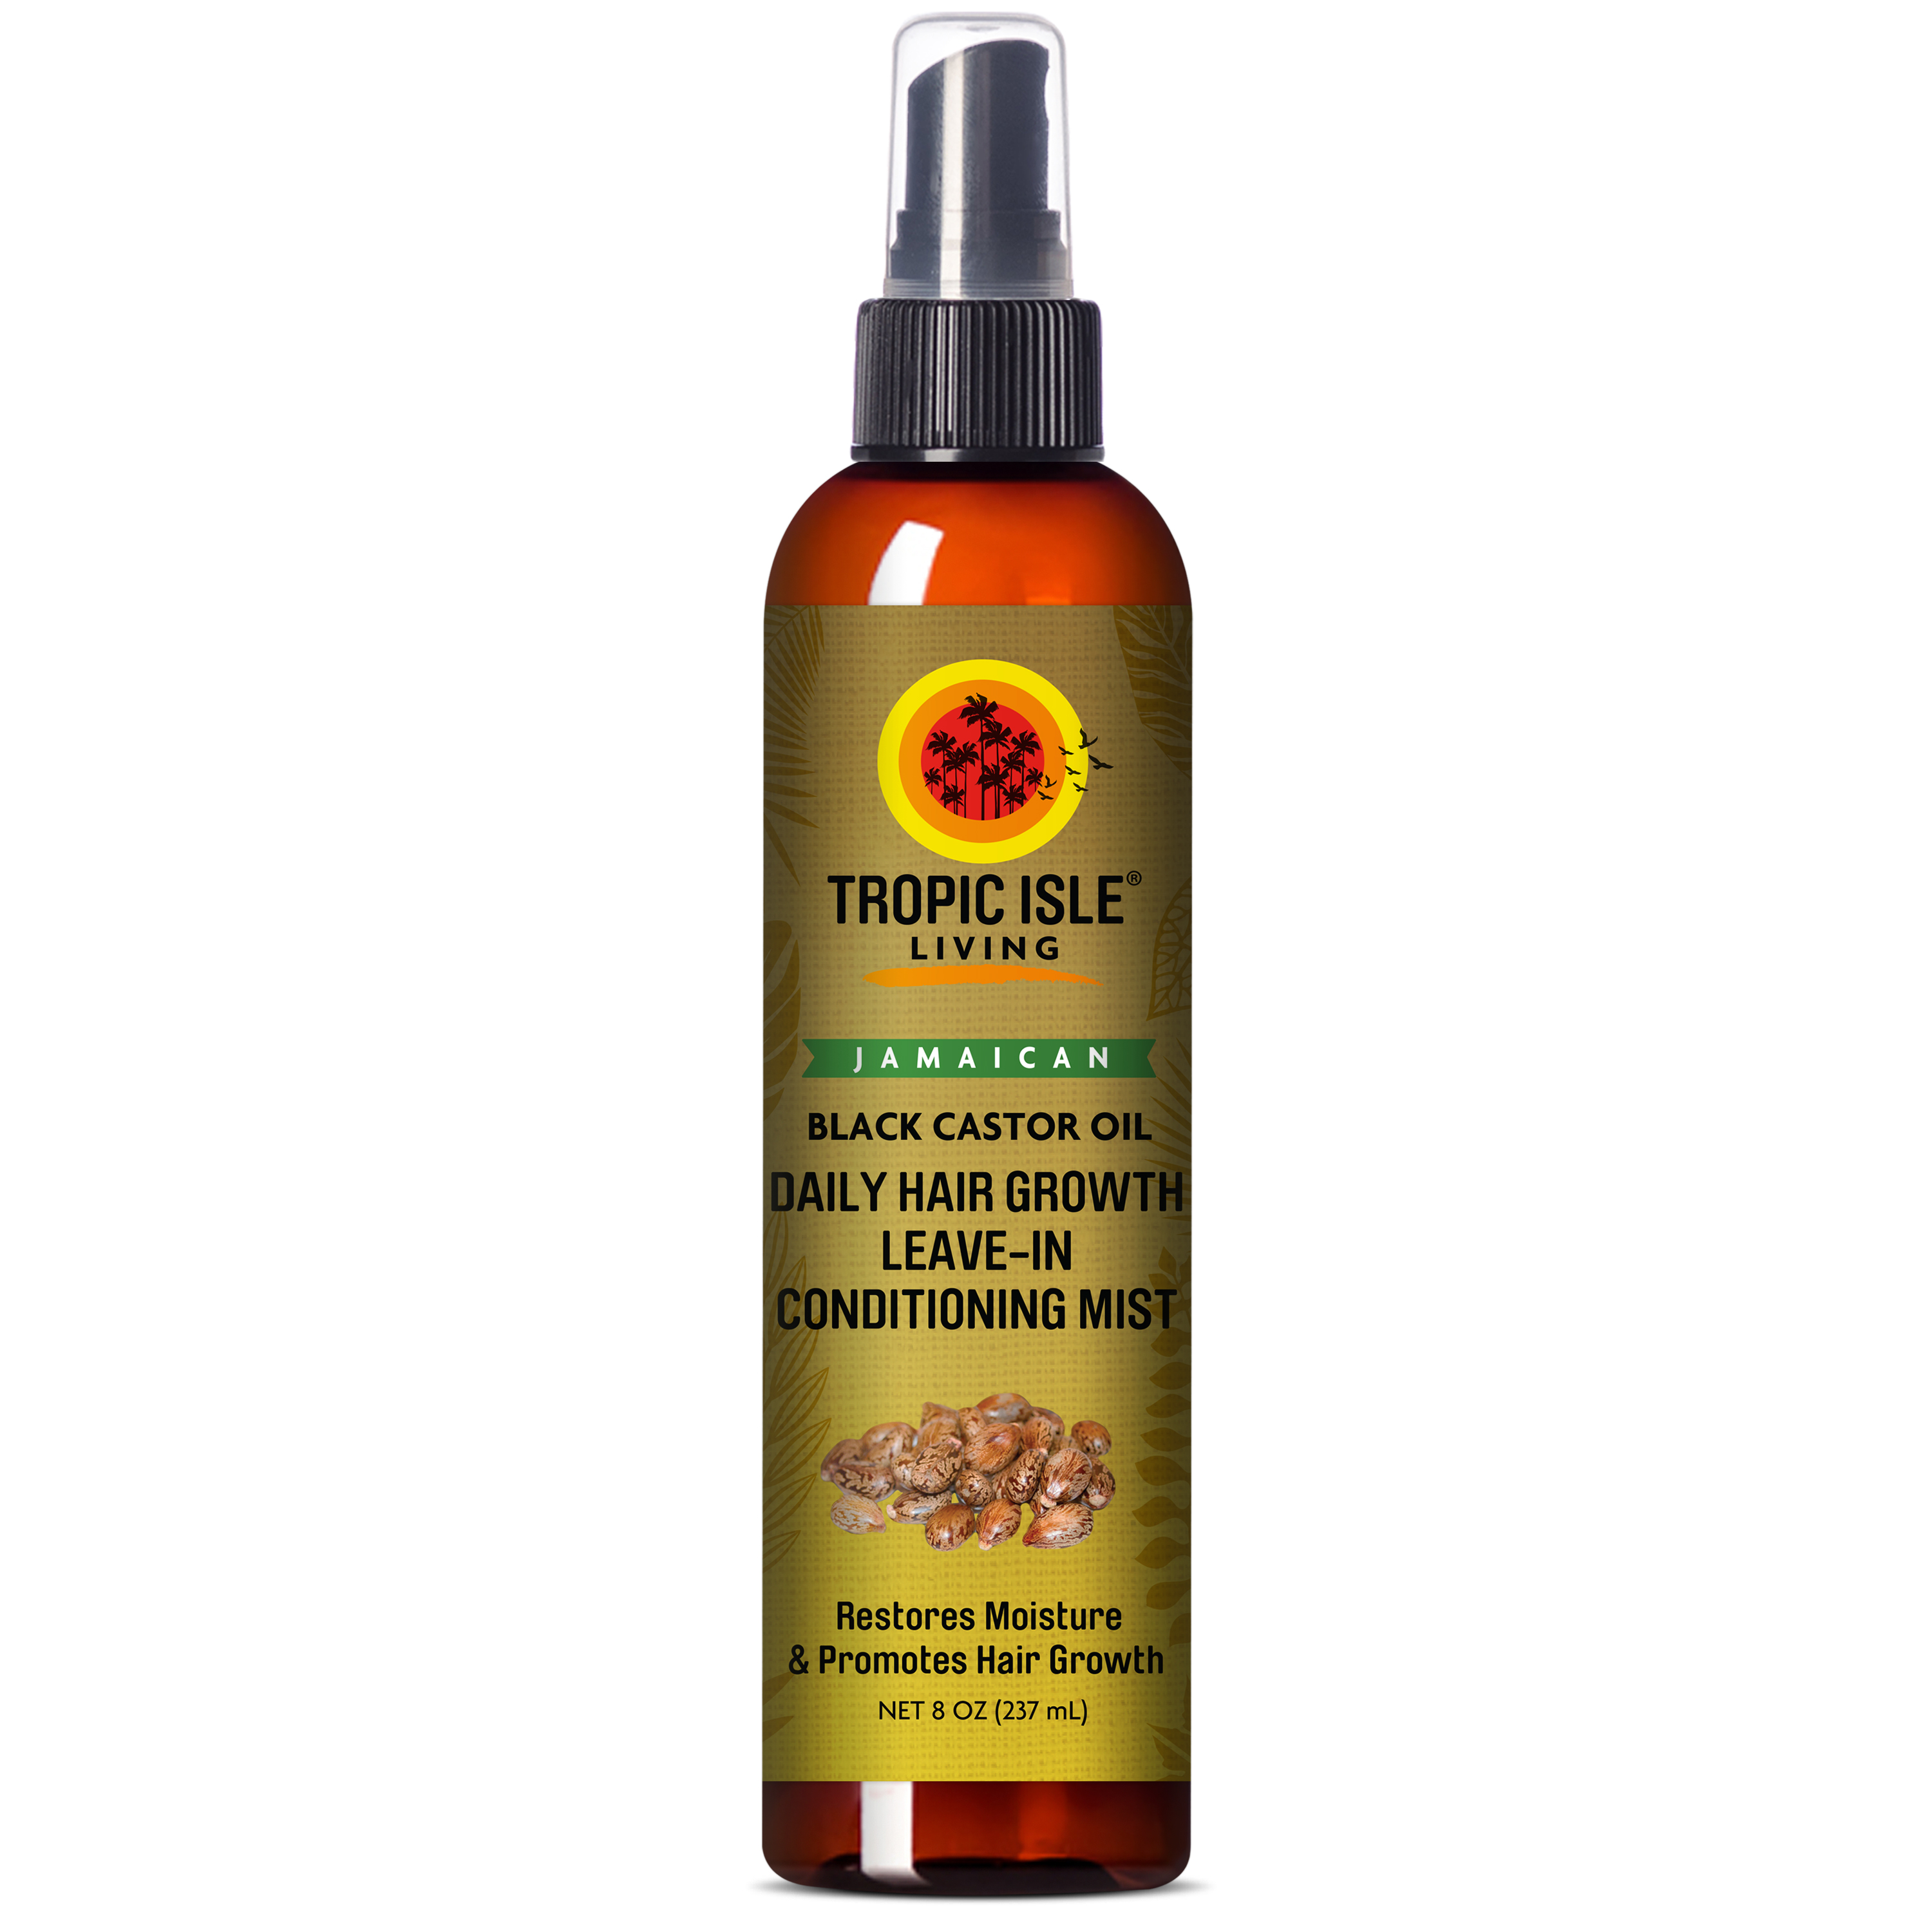 Jerly 2a: Tropic Isle Tropic Isle Living Jamaican Black Castor Oil Daily Hair Growth Leave In Conditioning Mist